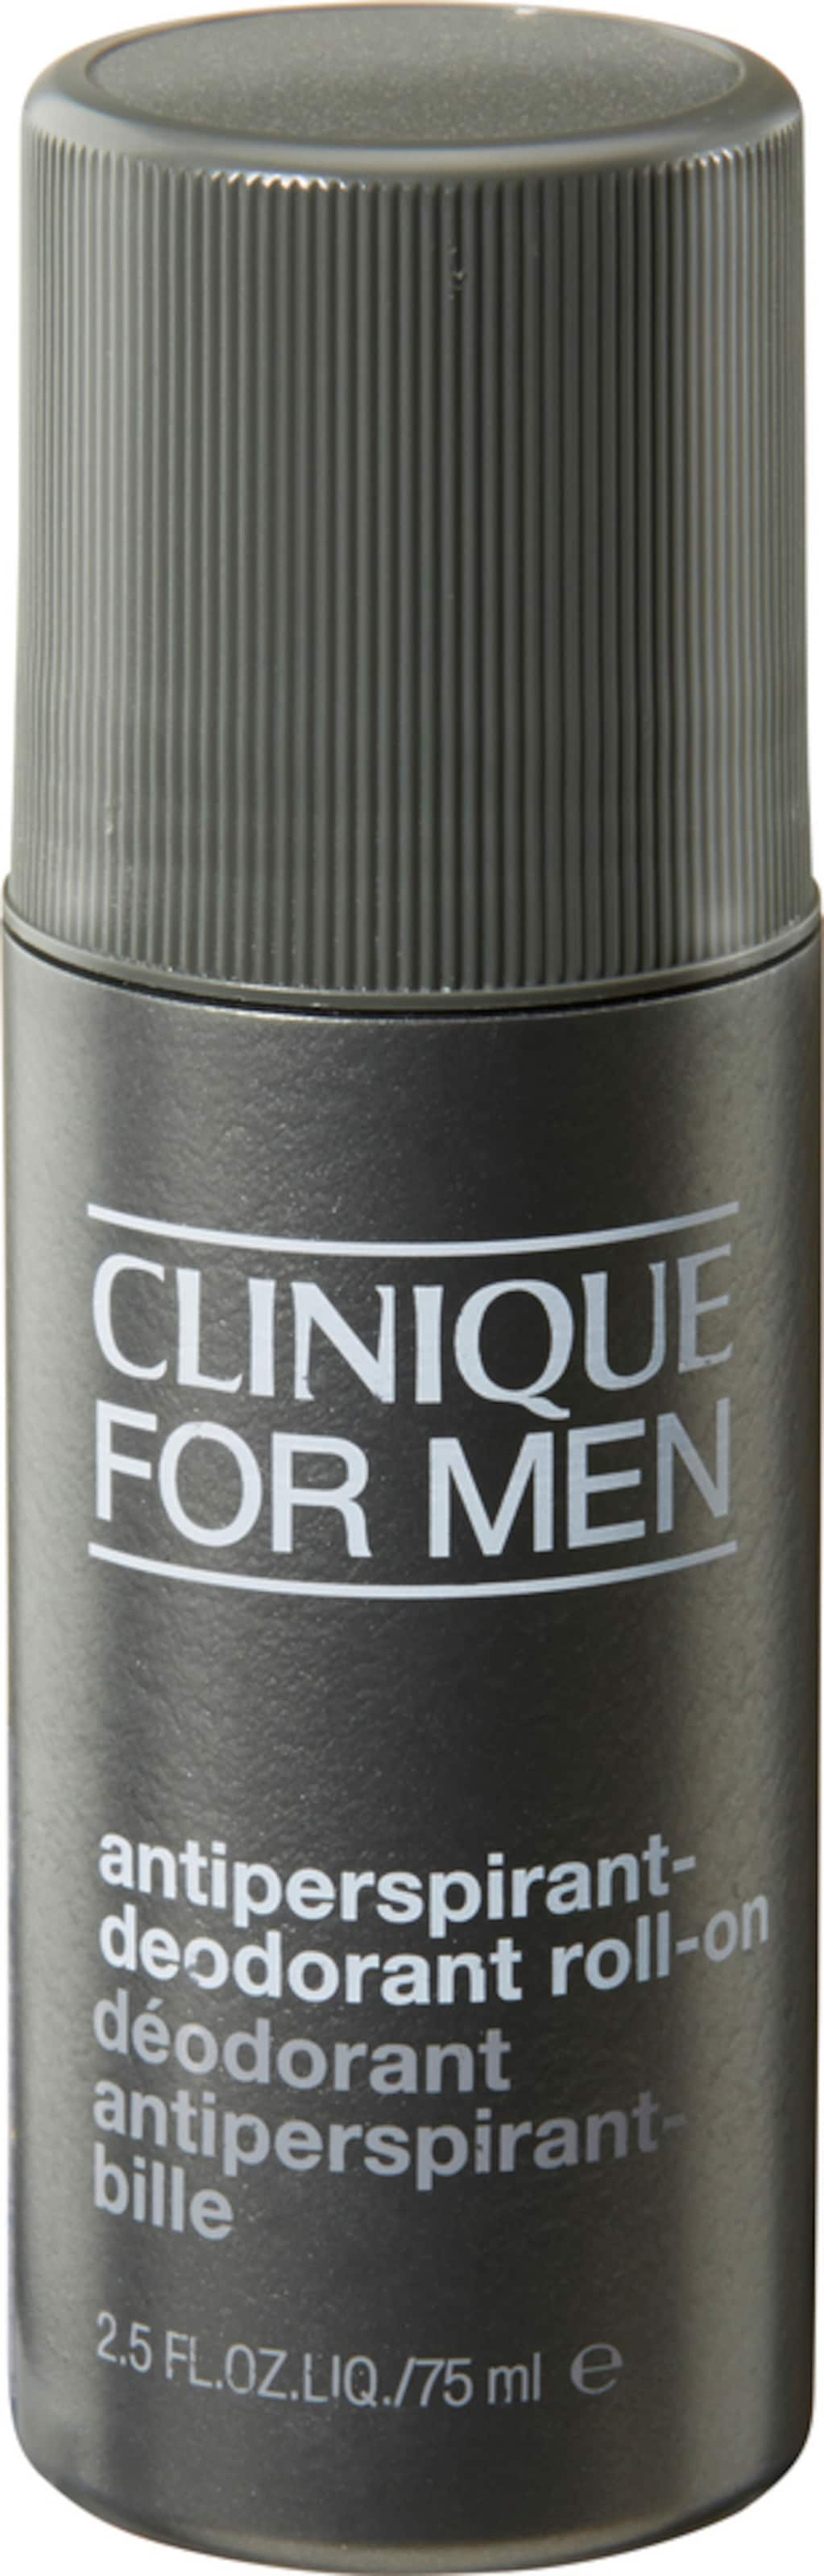 CLINIQUE 'Antiperspirant-Deodorant Roll-On' Deo Roller Billig Verkaufen Kaufen 7C4hI8htbb